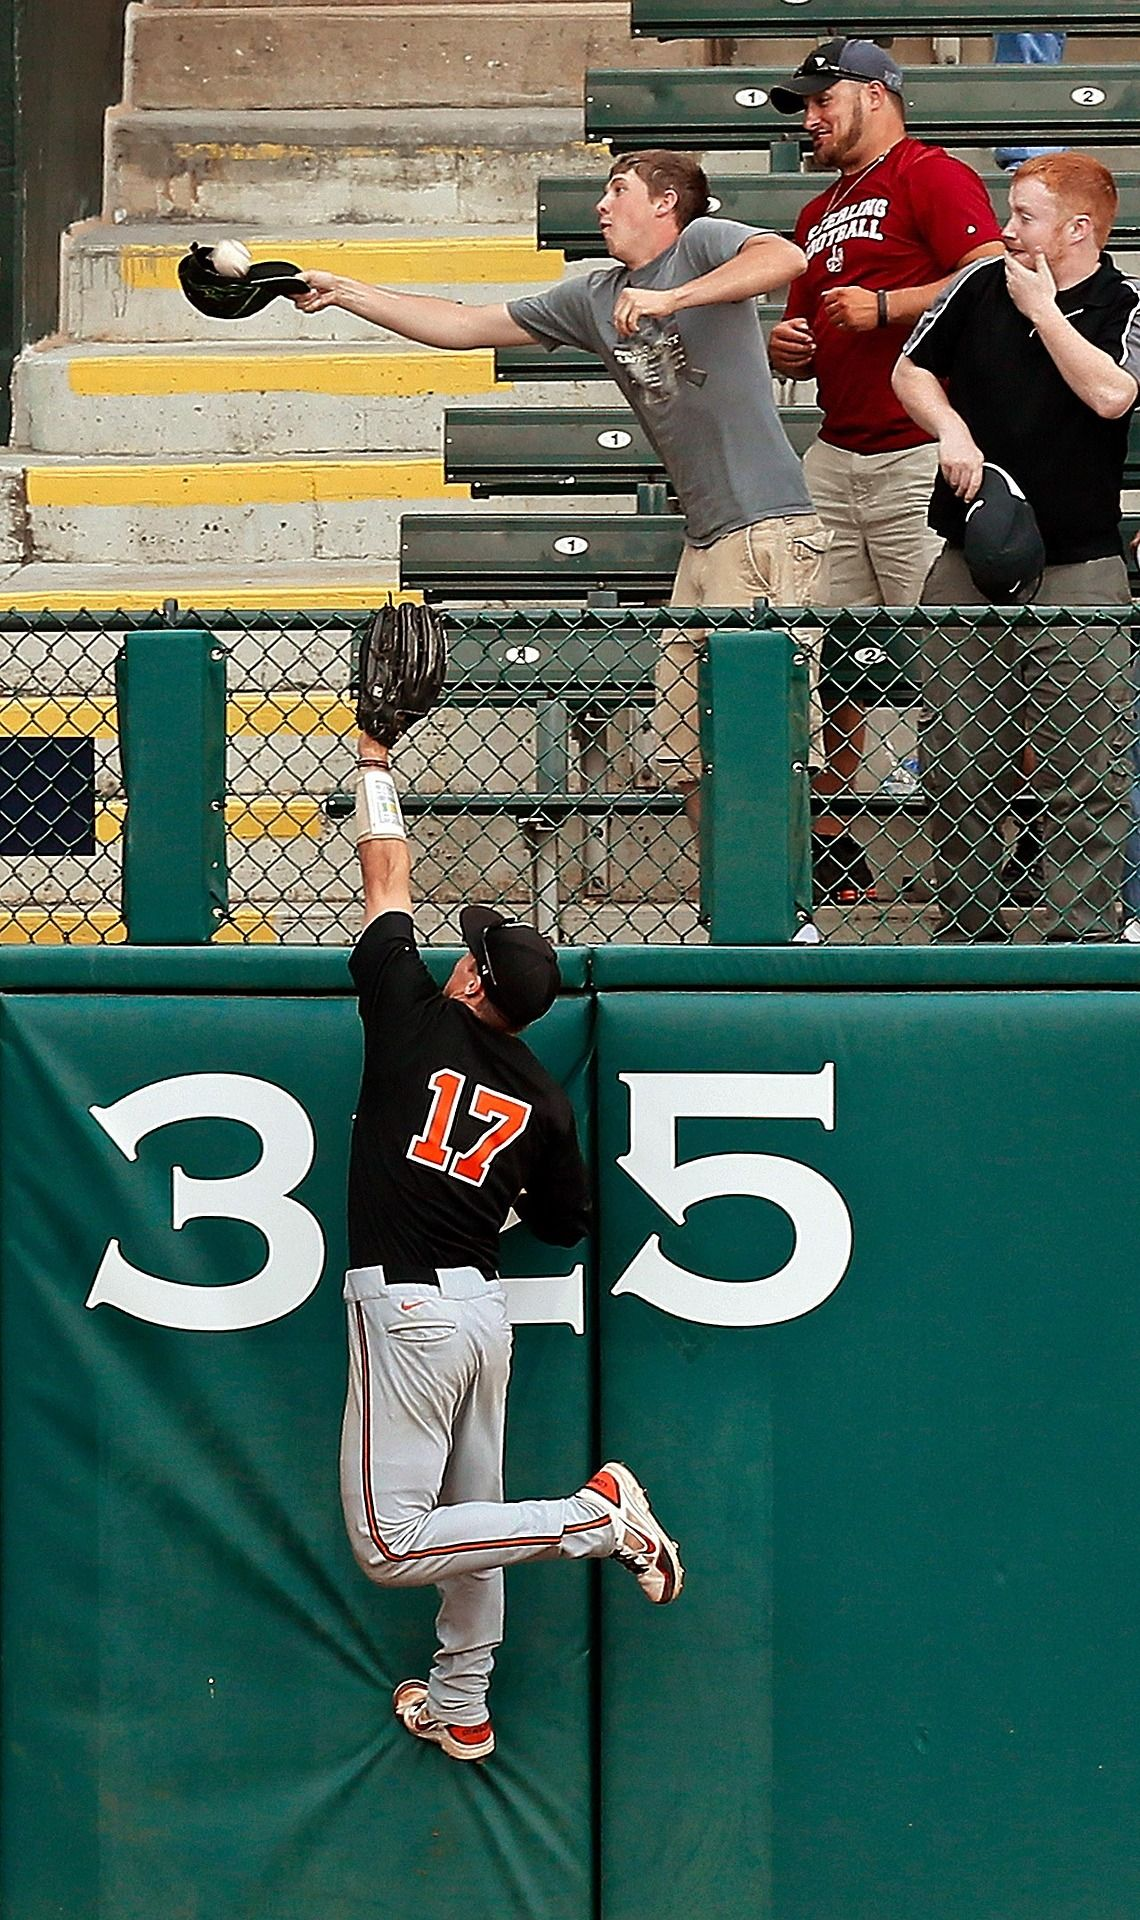 hat trick a fan uses his cap to catch a home run ball by west rh pinterest co uk